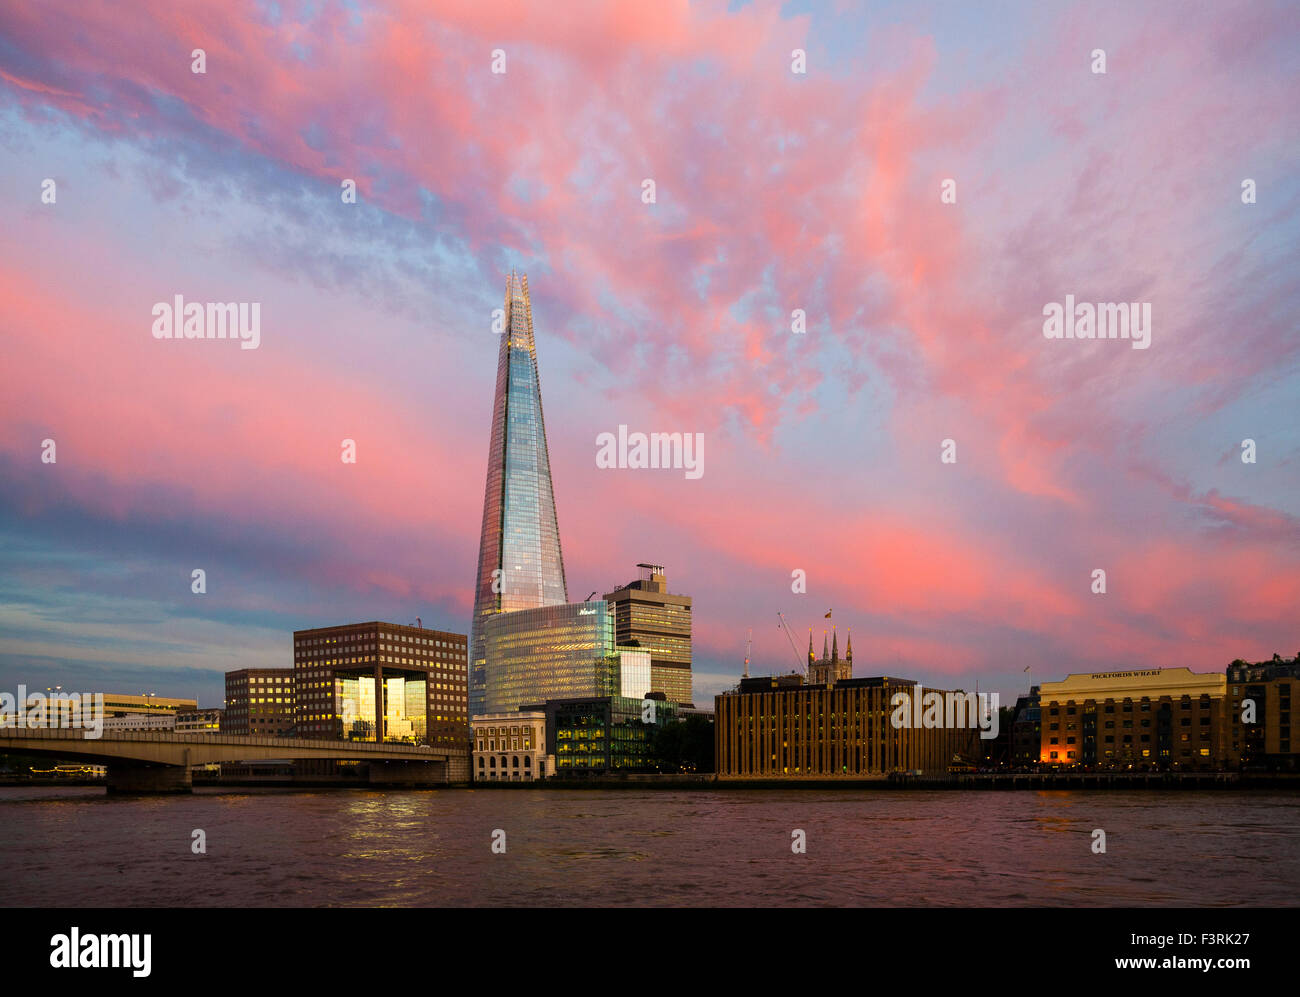 The Shard, Southwark, London, United Kingdom - Stock Image